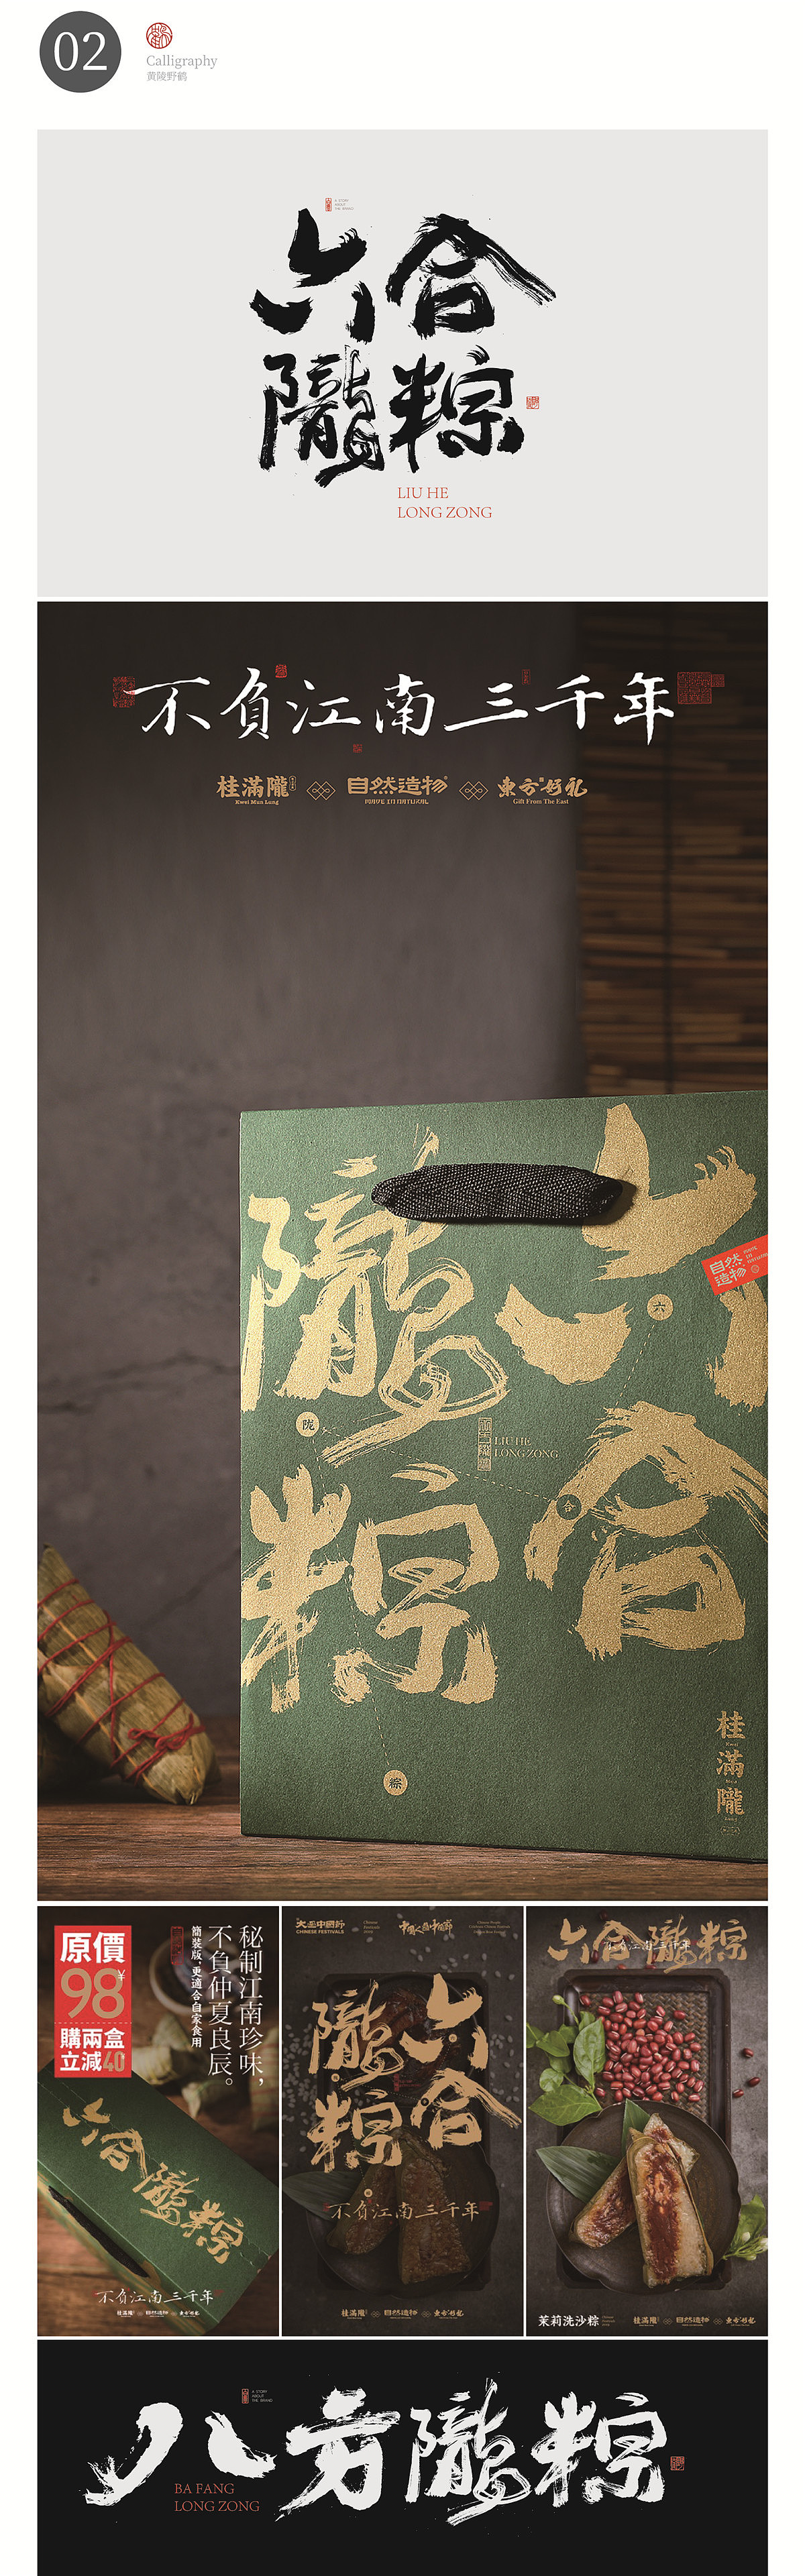 Calligraphy Font Design-Bai Mo-Huang Ling Ye He-Arrangement of Commercial Calligraphy Works